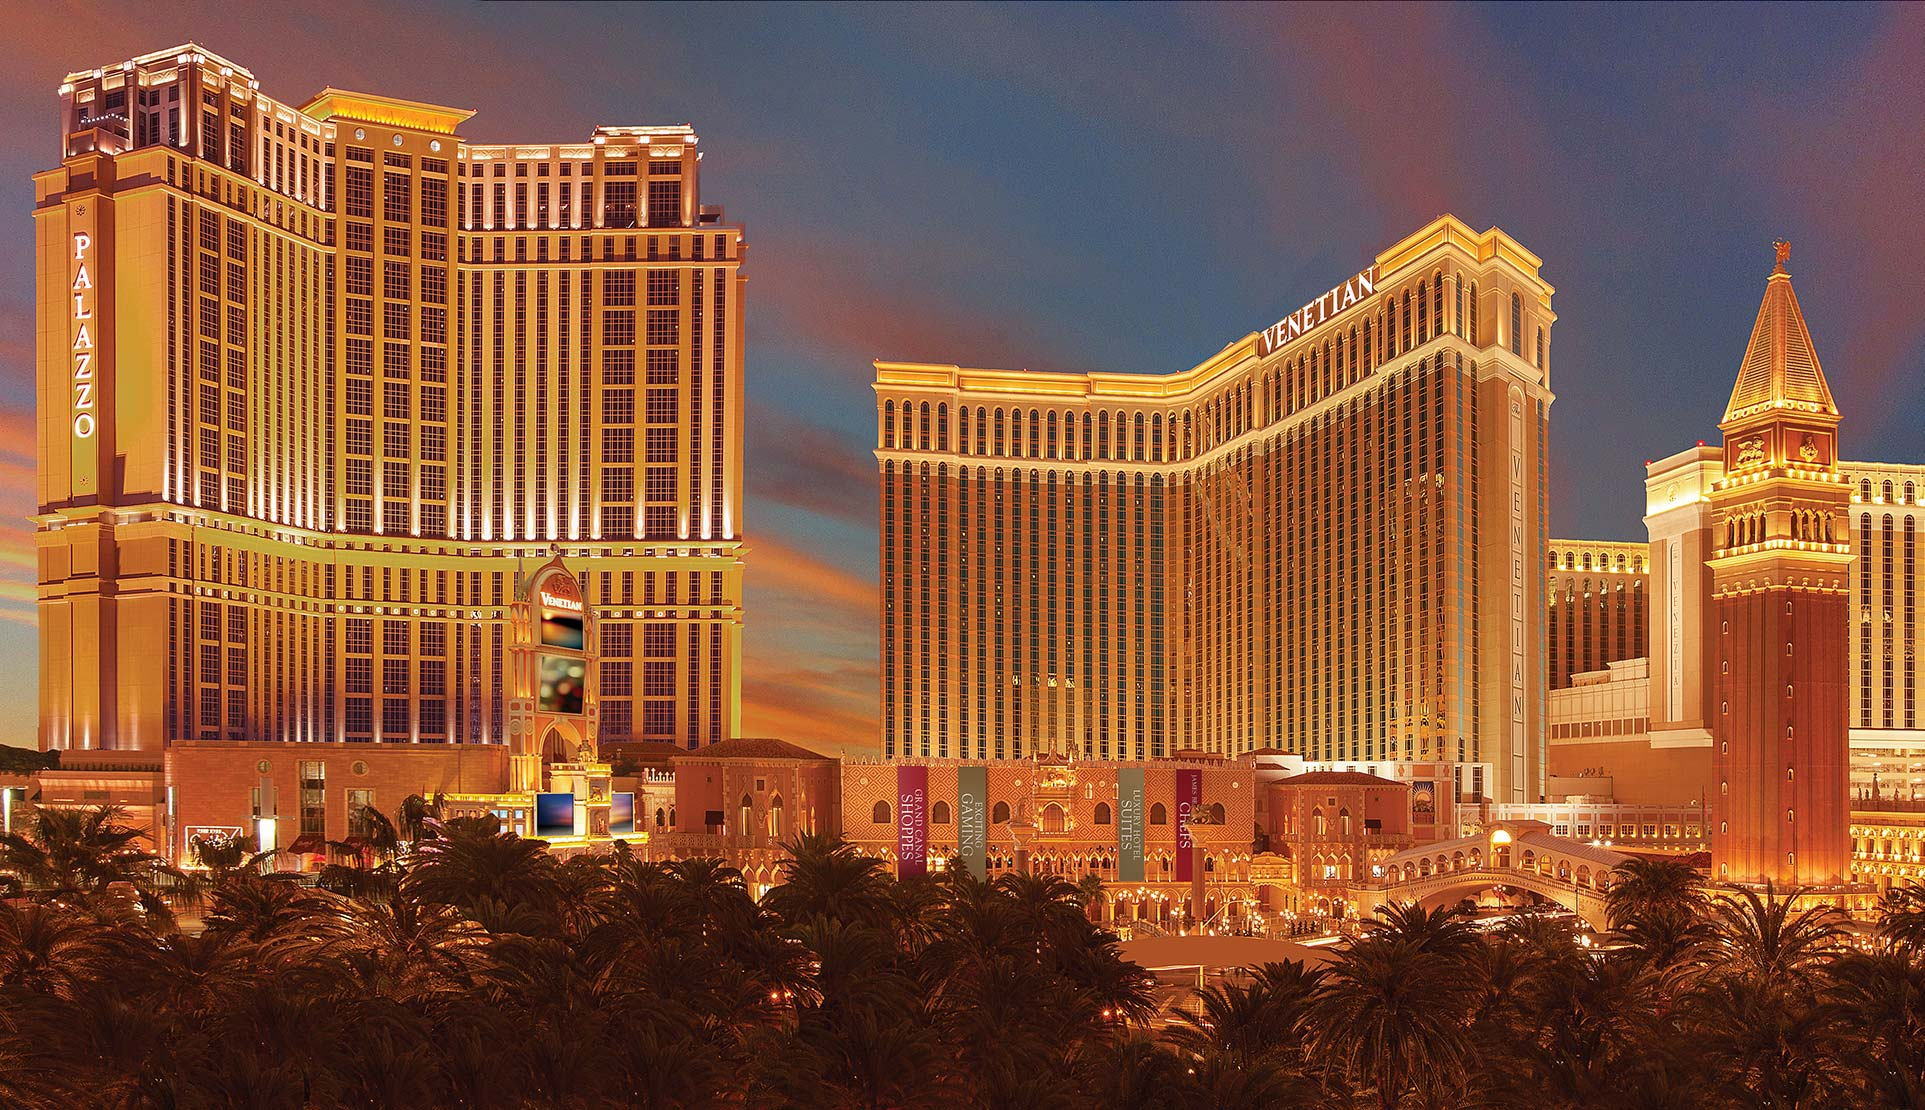 Sheldon Adelson s Las Vegas Sands in talks to sell Vegas Strip properties in potential $6 billion deal